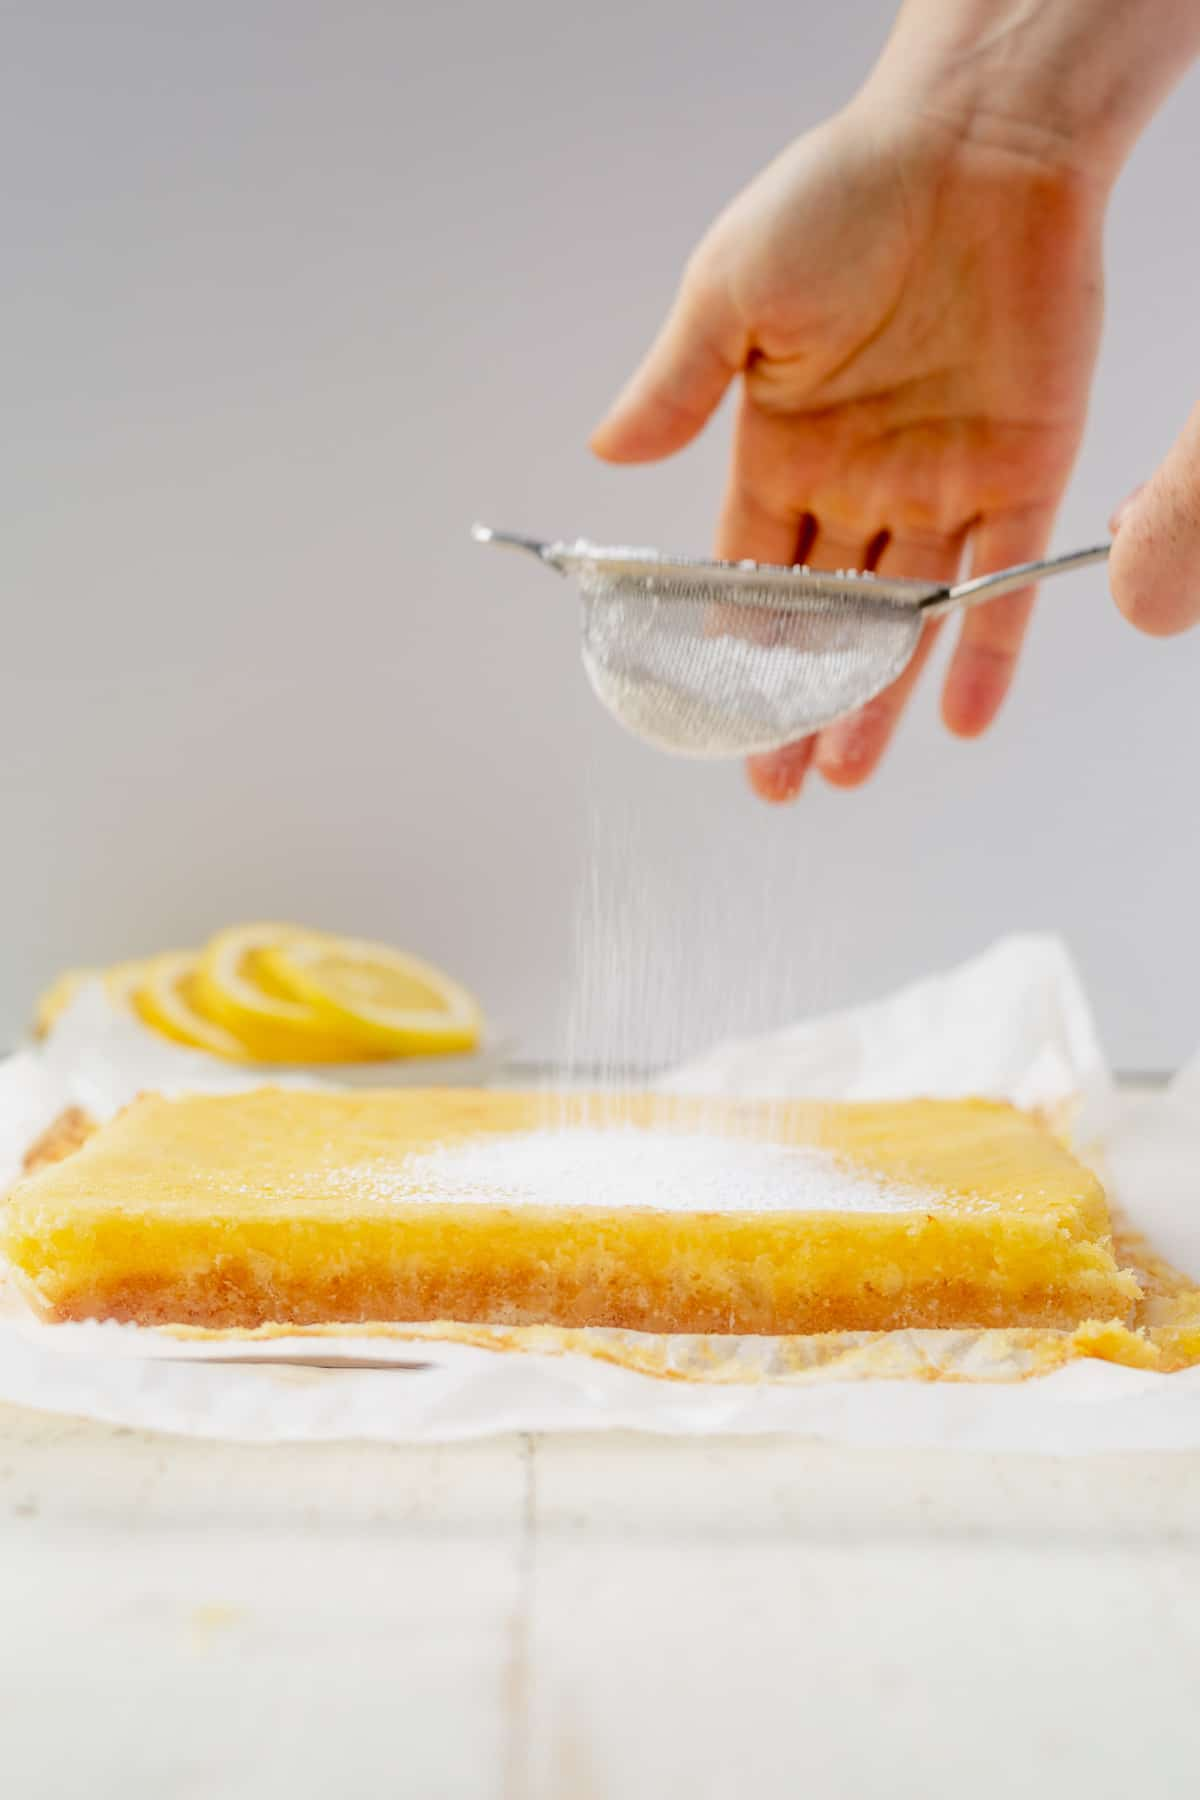 sifting confectioners' sugar over gluten free lemon bars on a piece of parchment paper